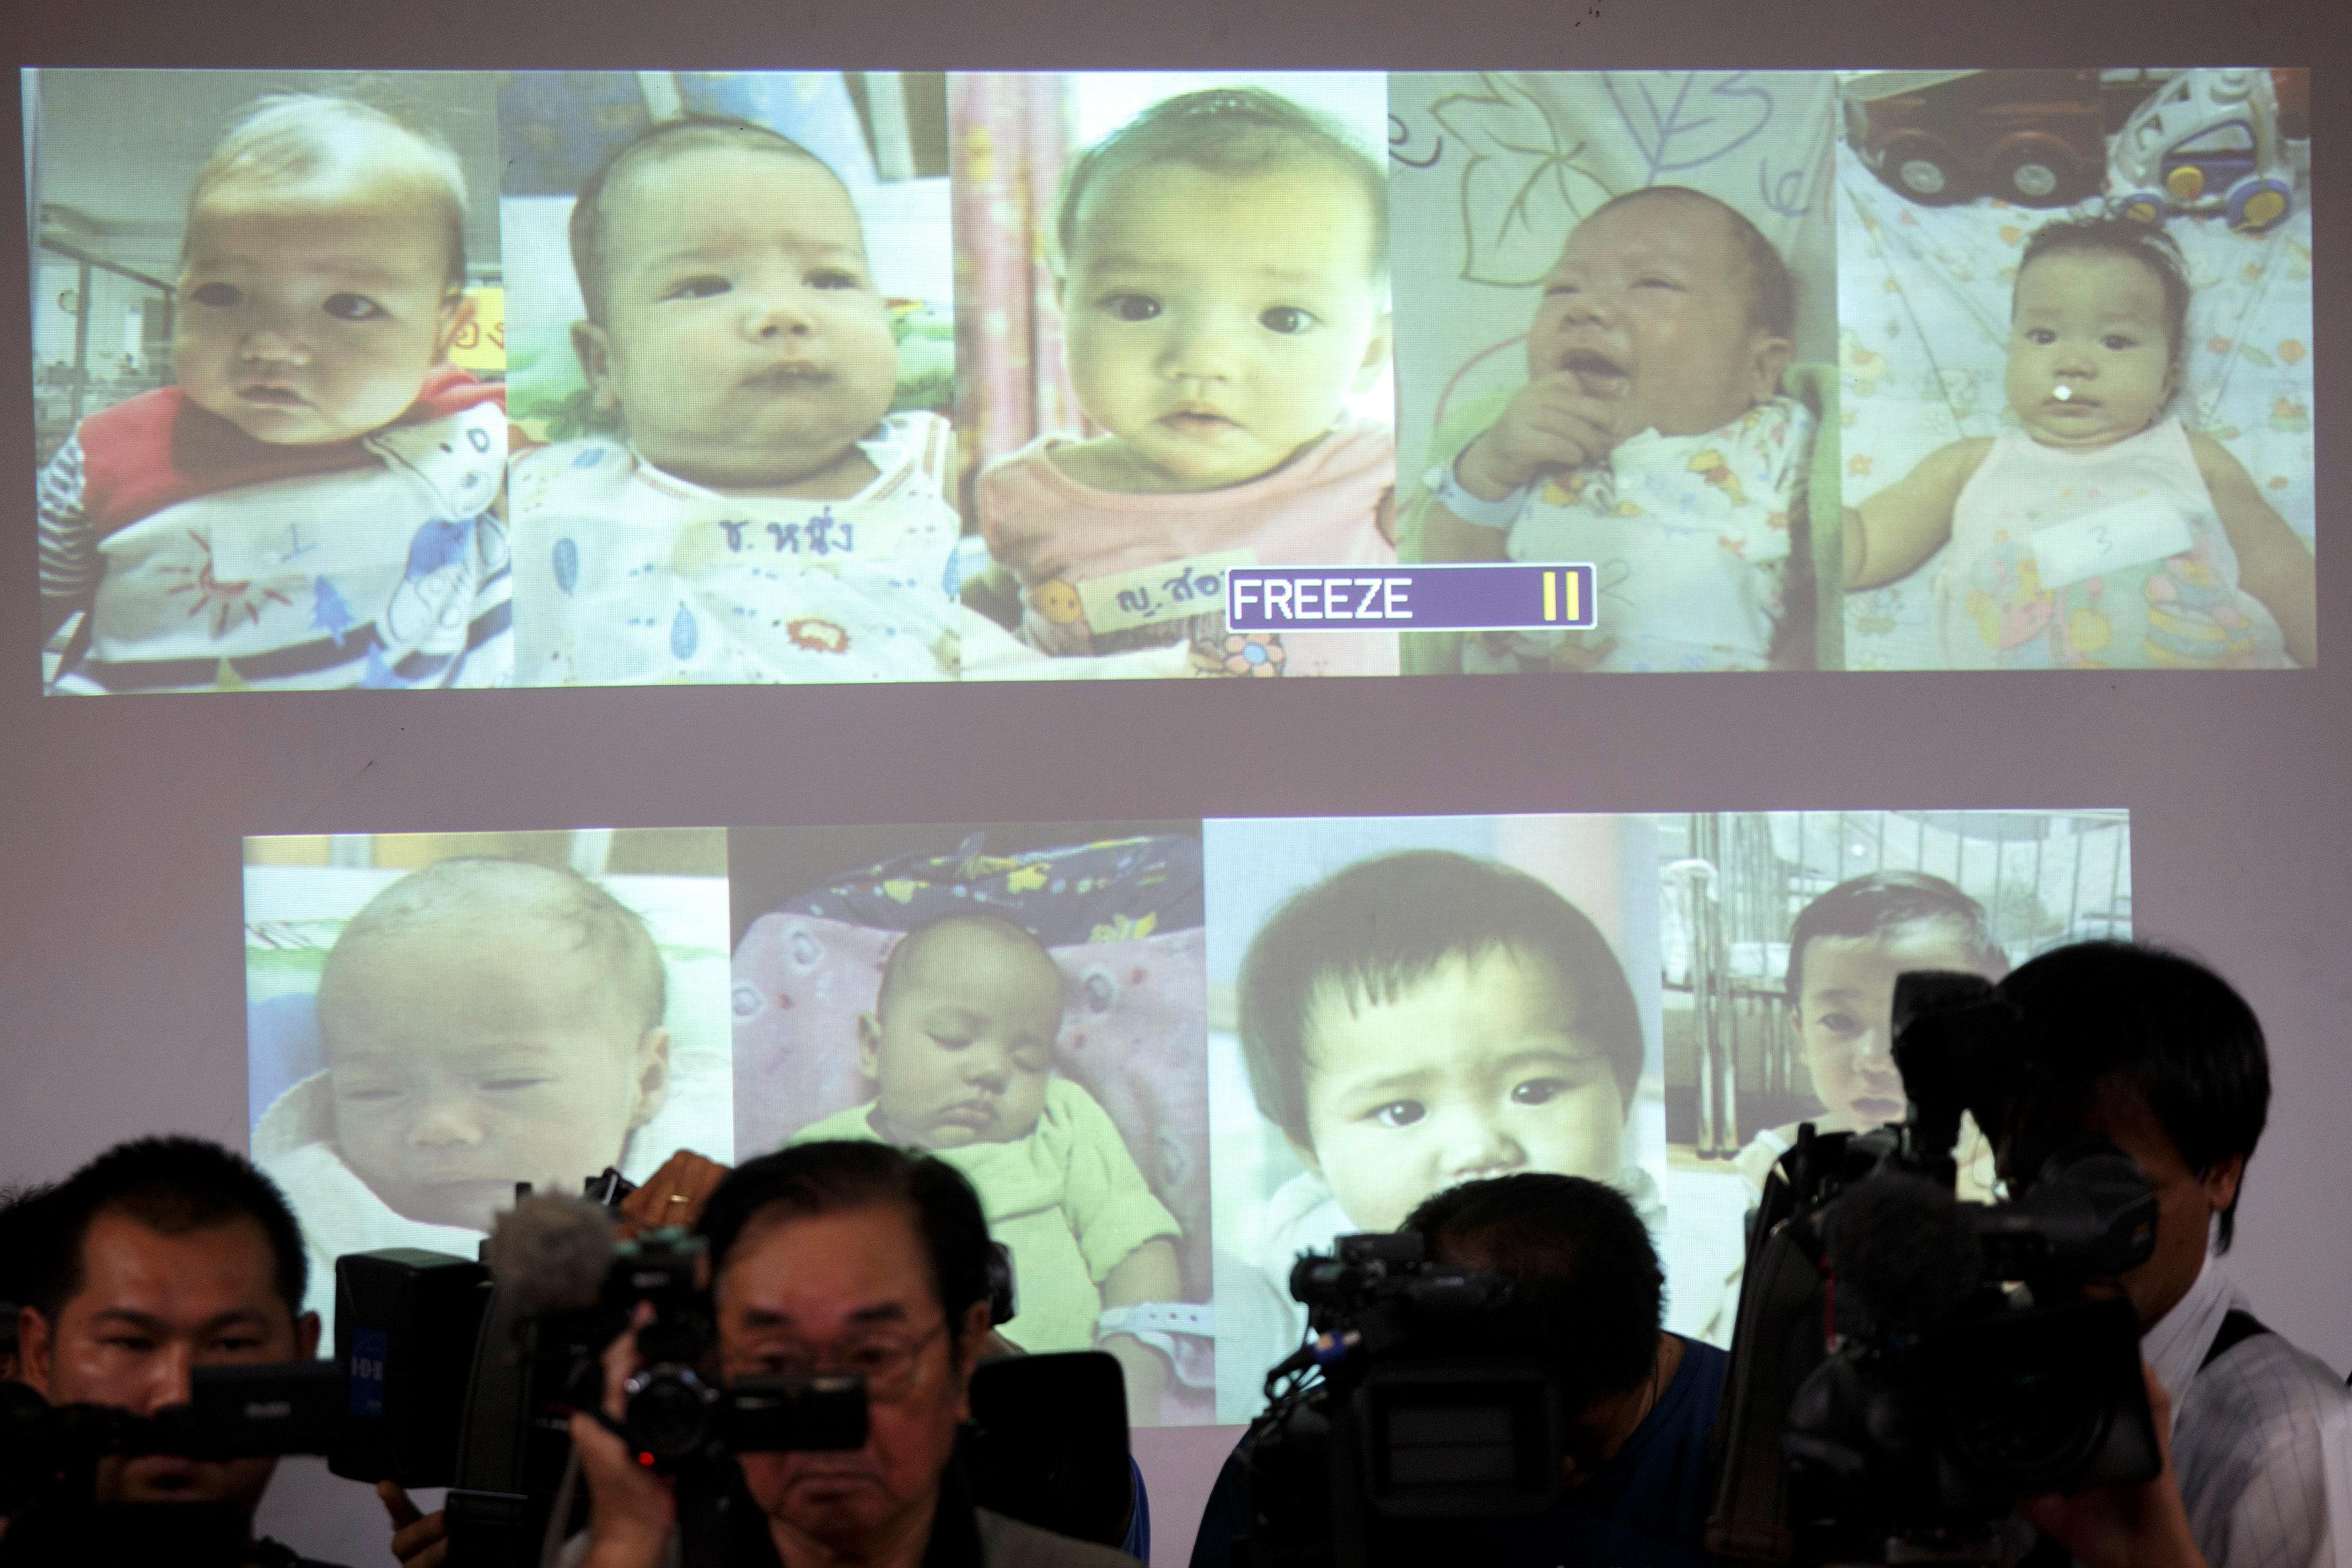 Surrogate babies that Thai police suspect were fathered by a Japanese businessman who has fled from Thailand are shown on a screen during a news conference at the headquarters of the Royal Thai Police in Bangkok August 12, 2014. Athit Perawongmetha